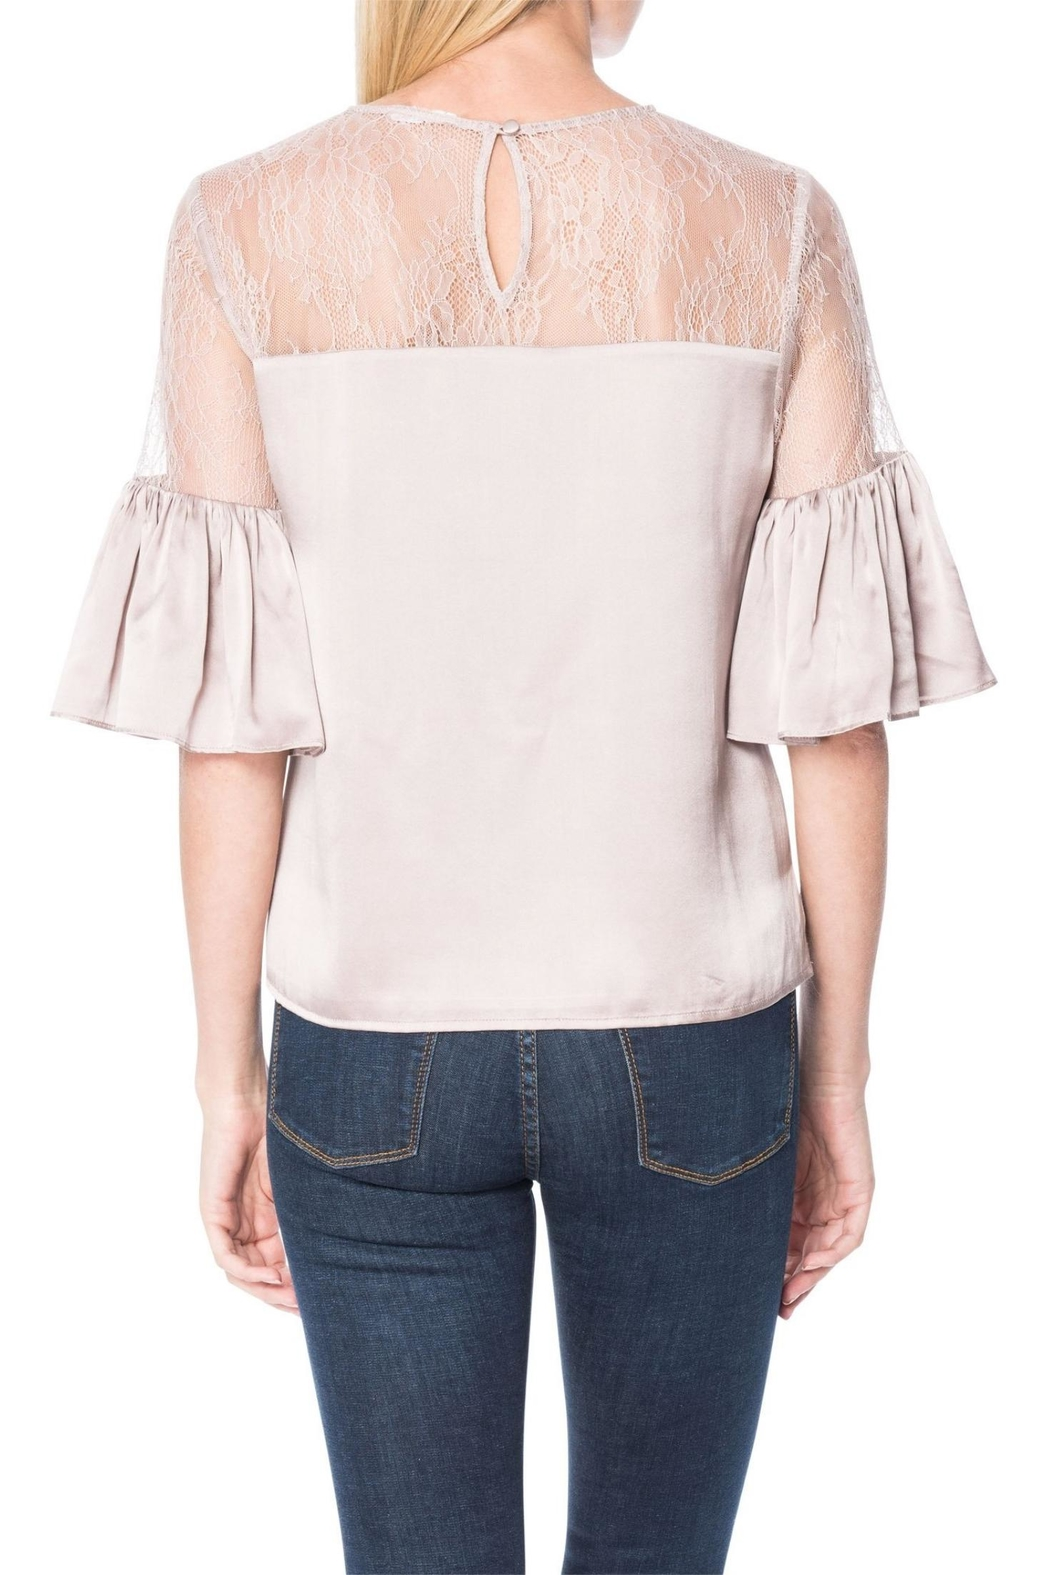 Cami NYC Shauna Top - Front Full Image